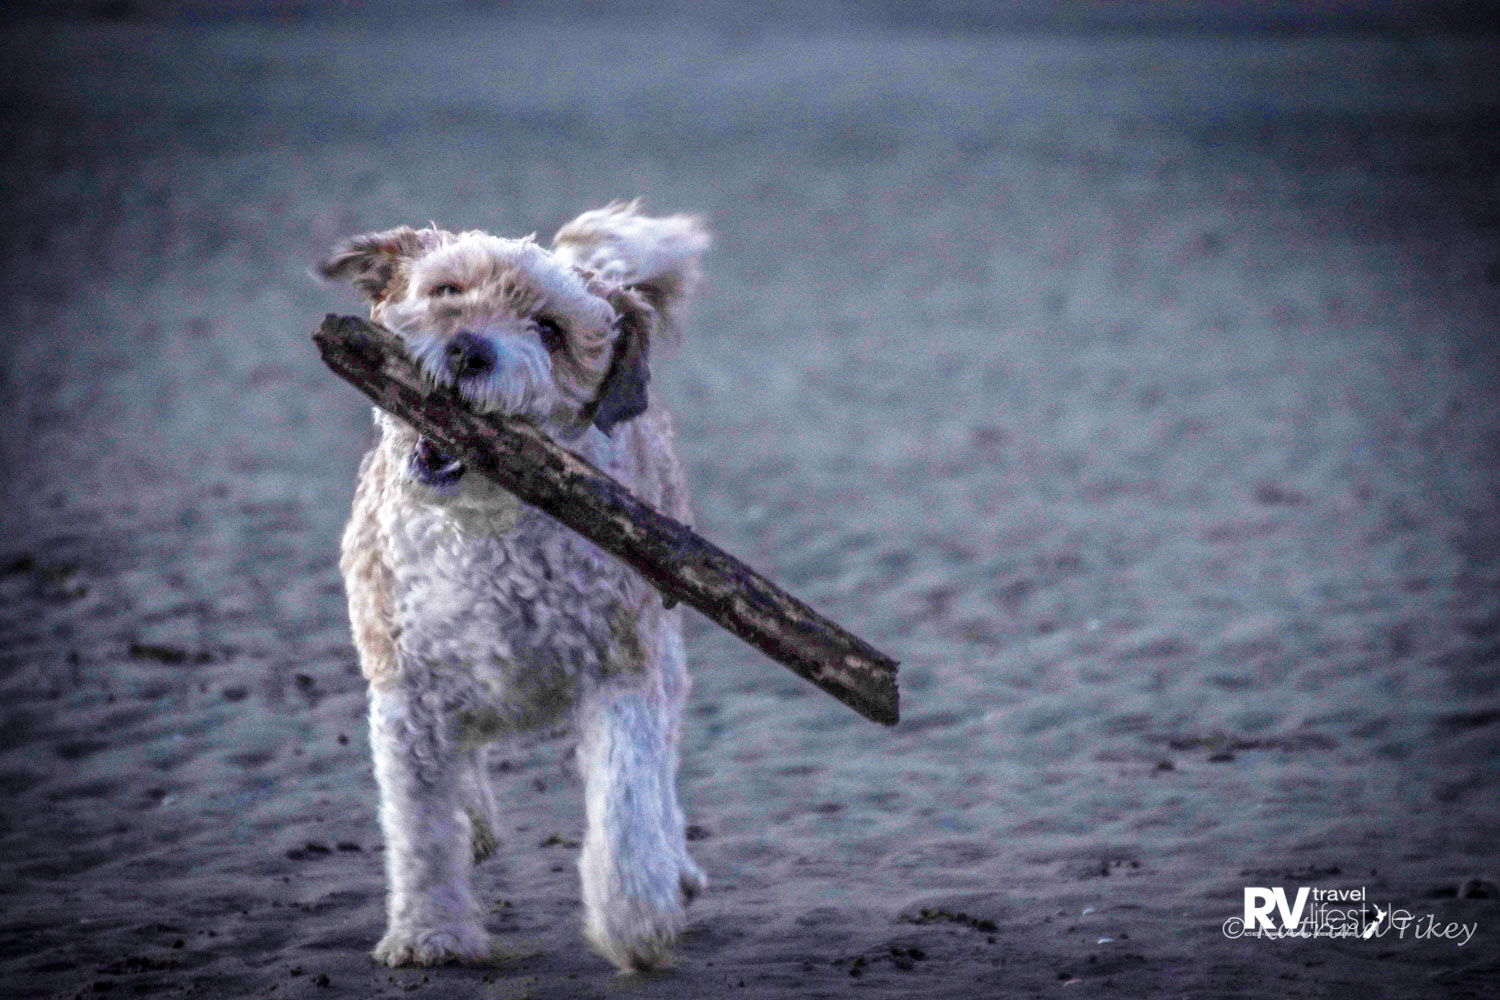 Lots of time to chase sticks on the beach